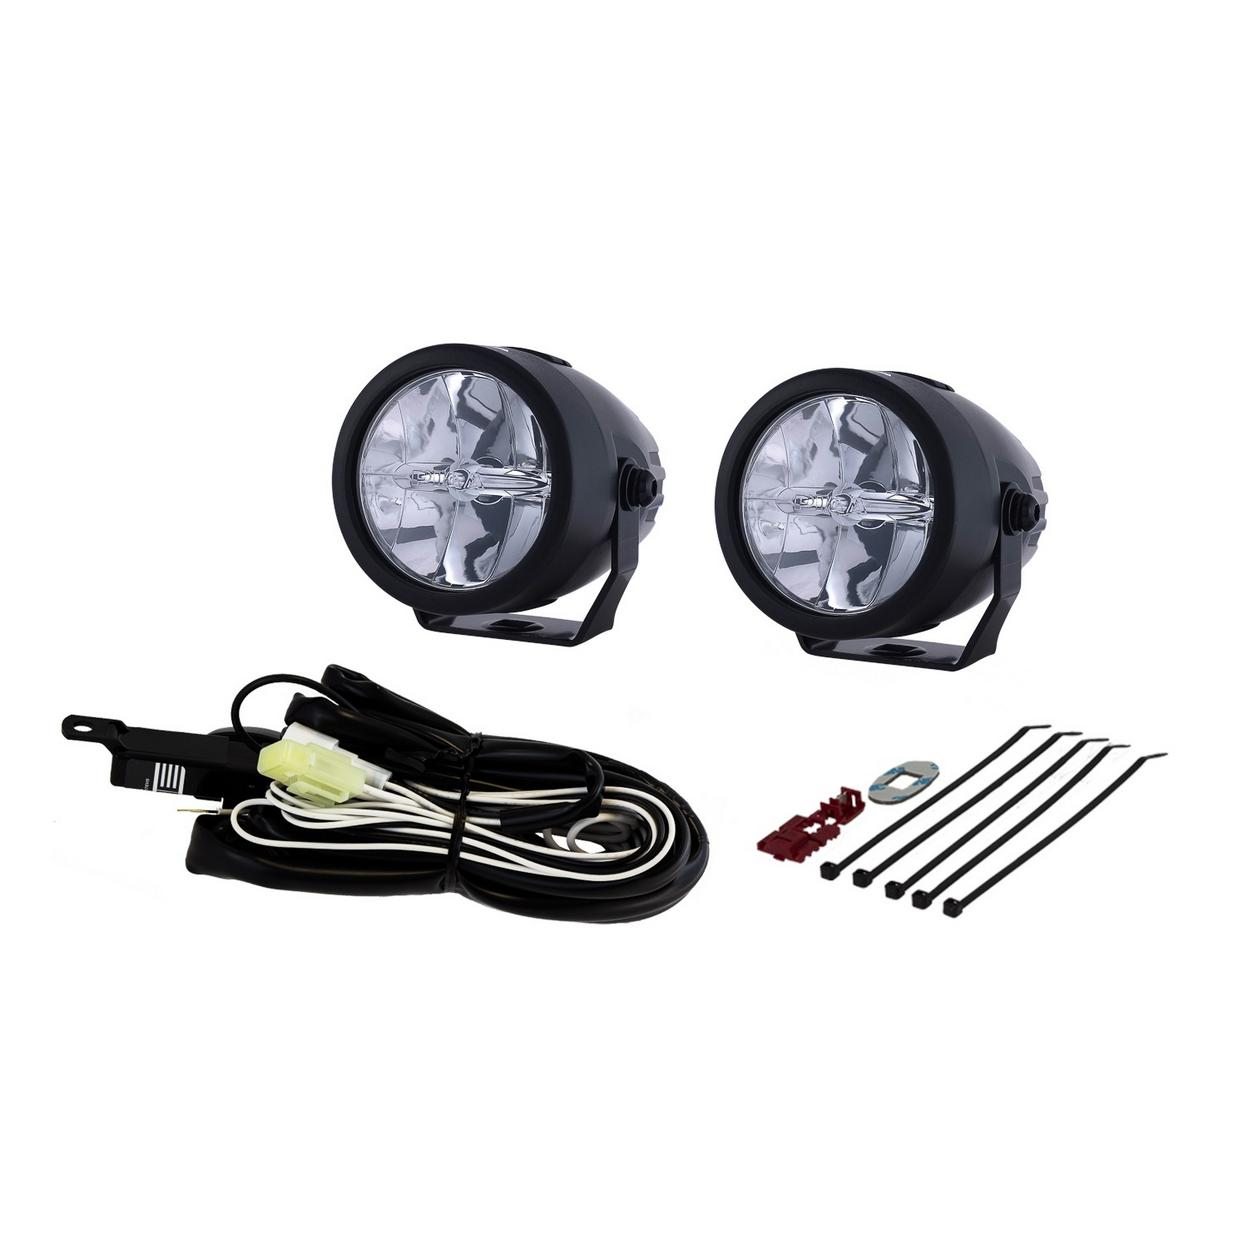 LP270 2.75IN. LED DRIVING LIGHT KIT; SAE COMPLIANT